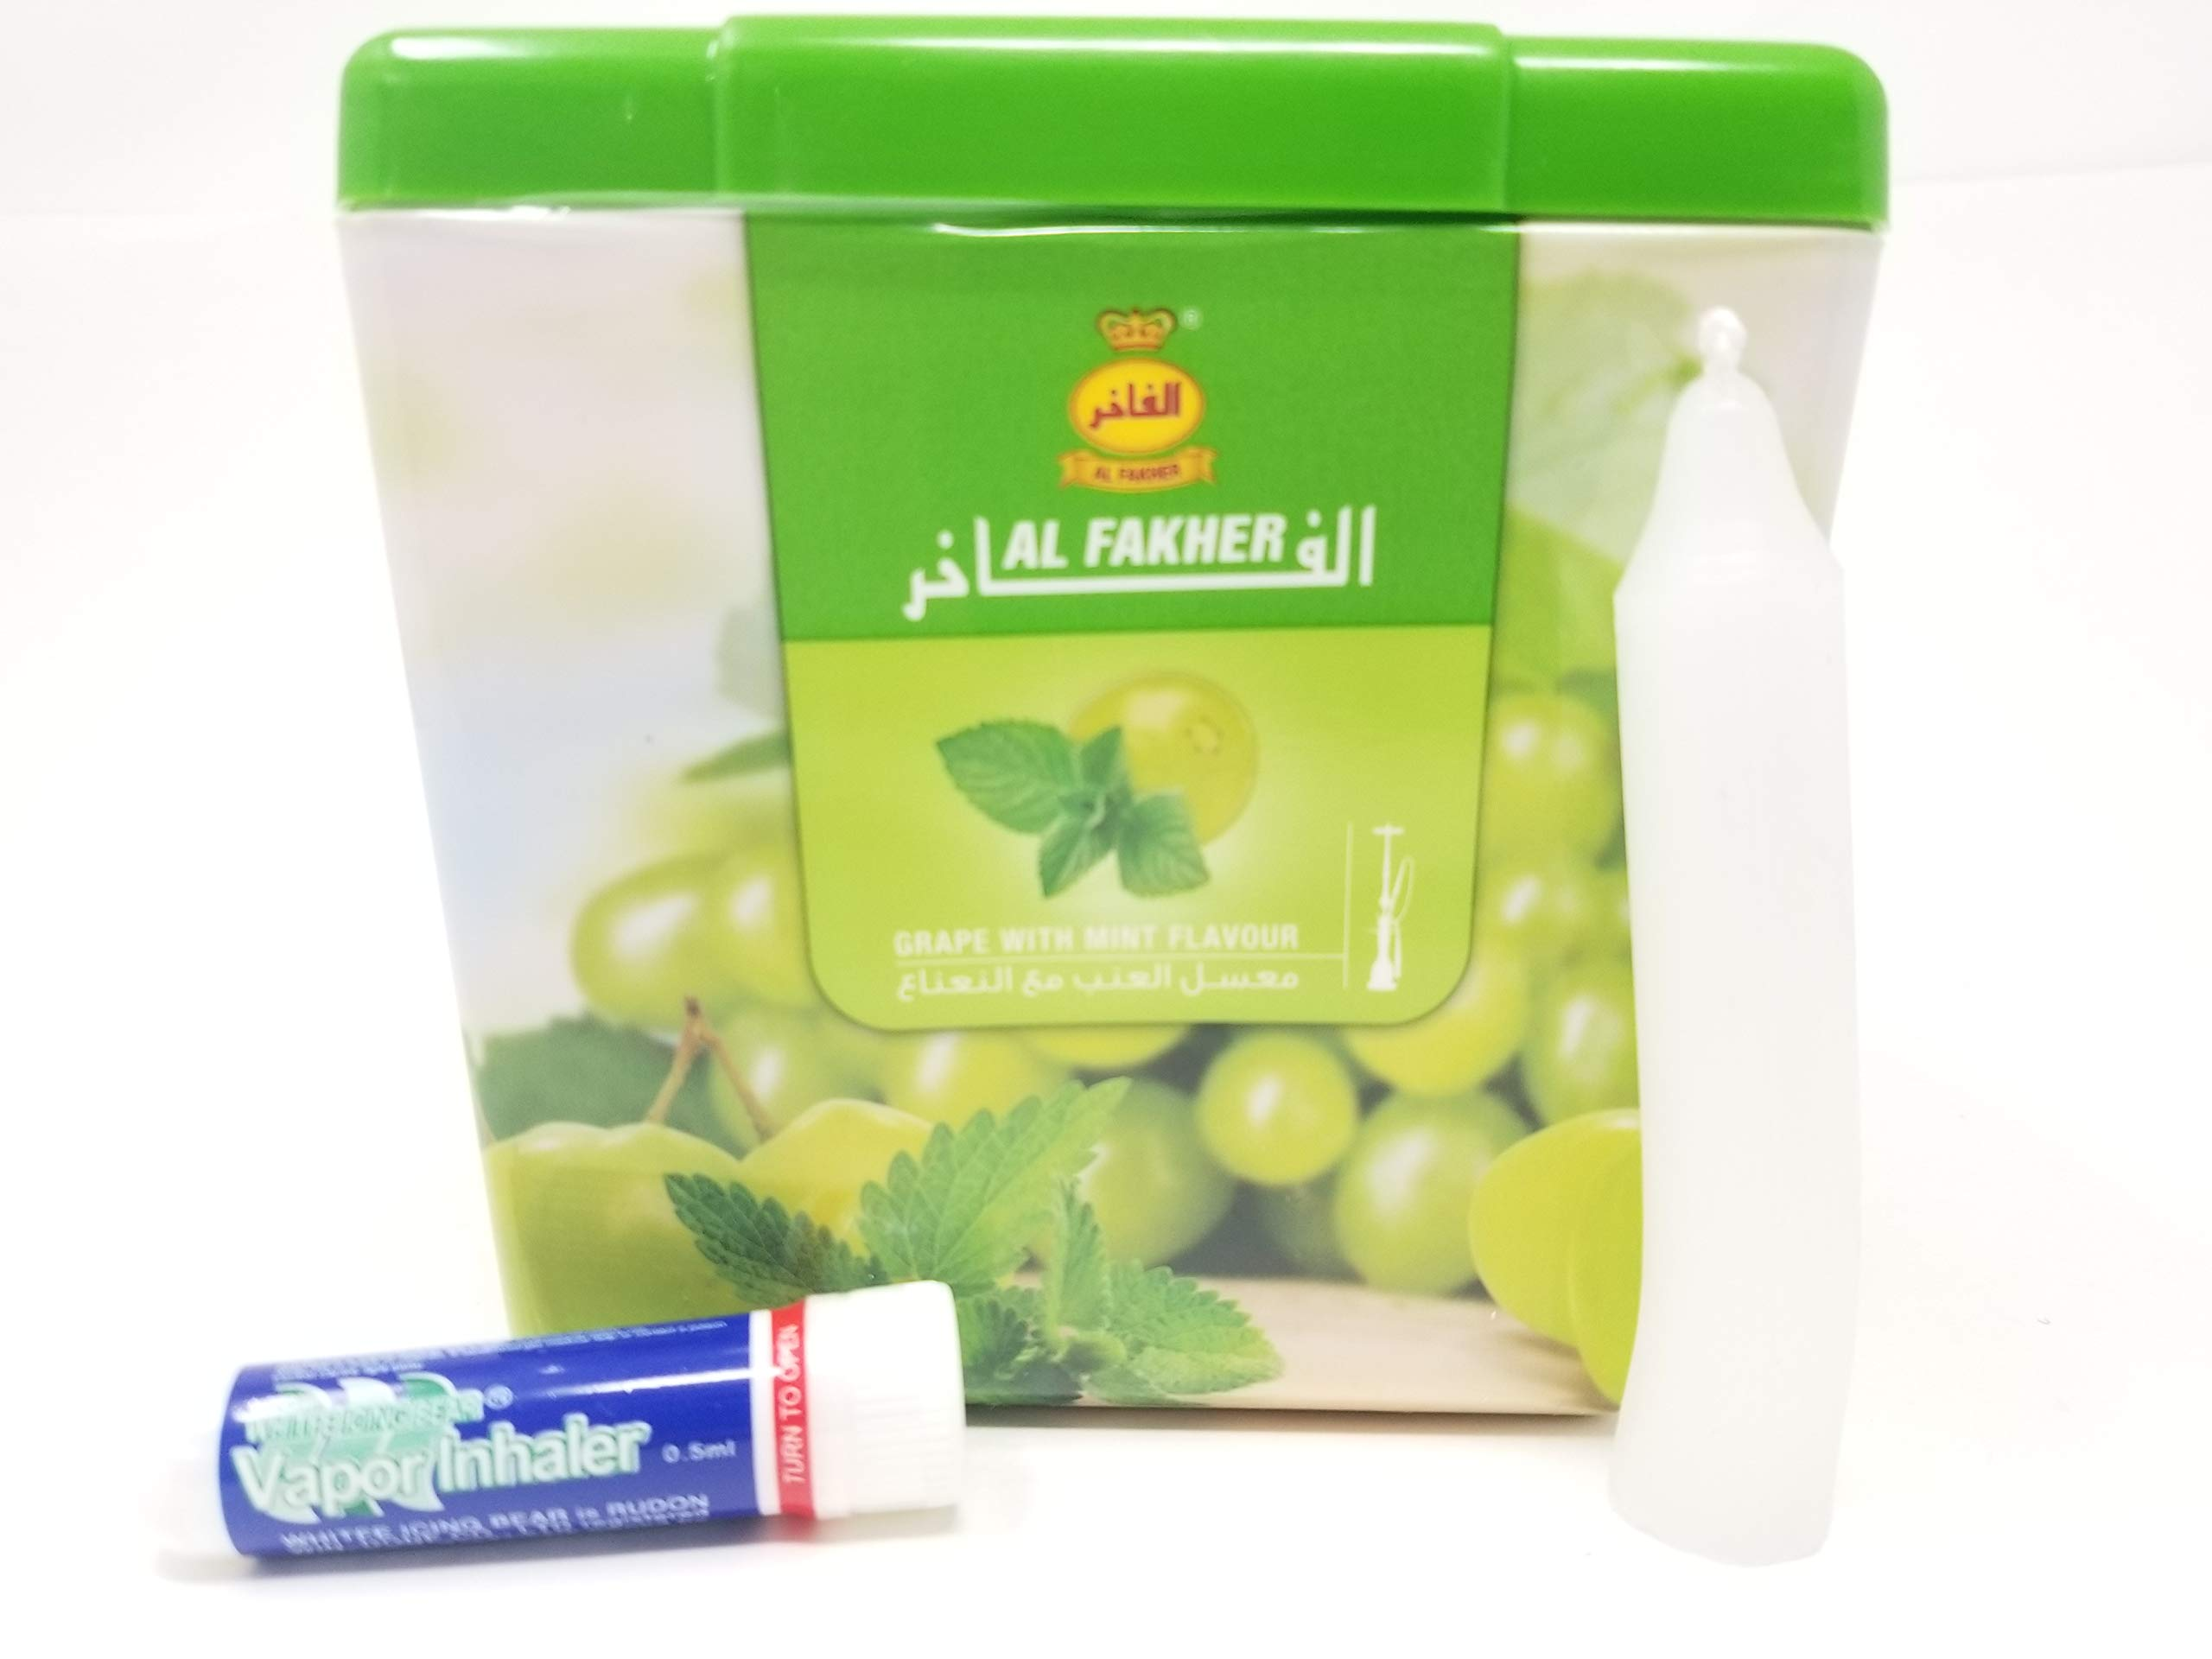 1 Kg. Al Fakher Shisha Molasses - Non Tobacco Grape with Mint Flavour Hookah Water Pipe Sold by SuperStore77 with Trademark Candle and Vapor Inhaler